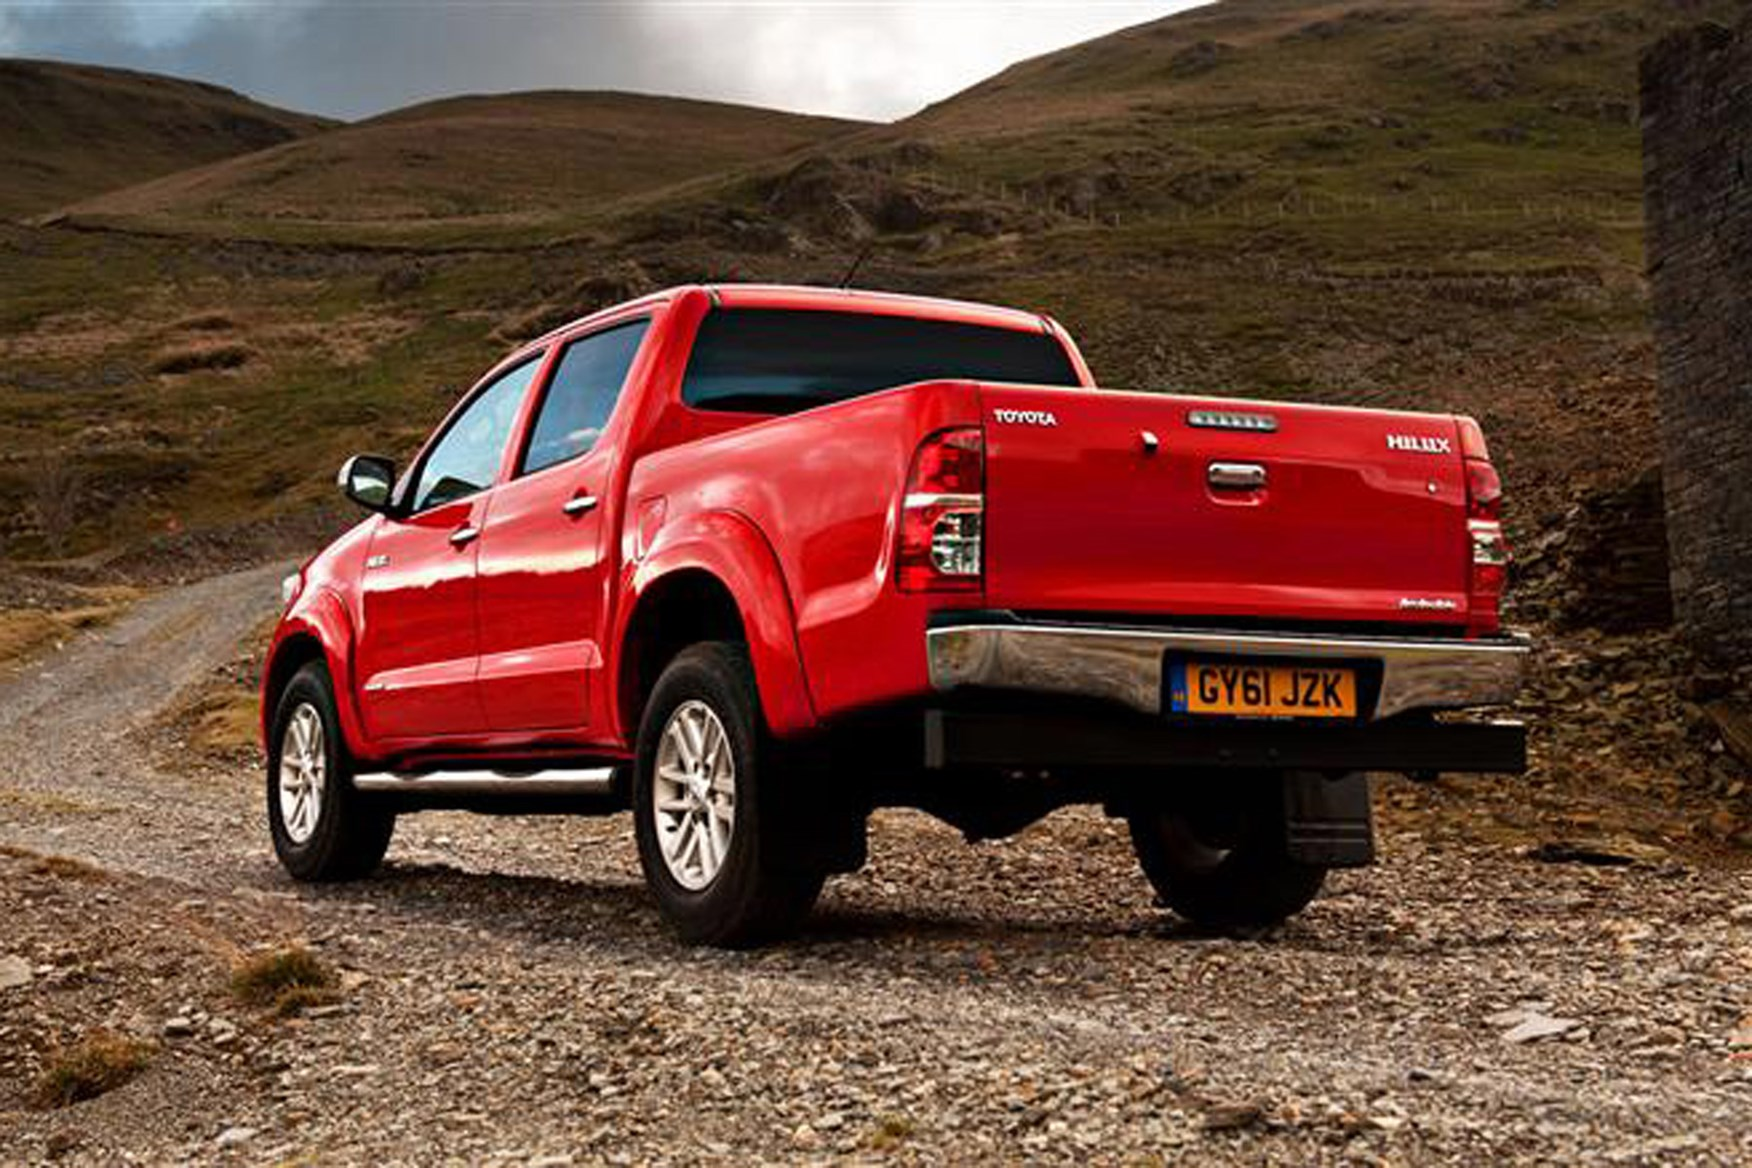 Toyota Hilux review on Parkers Vans - rear exterior